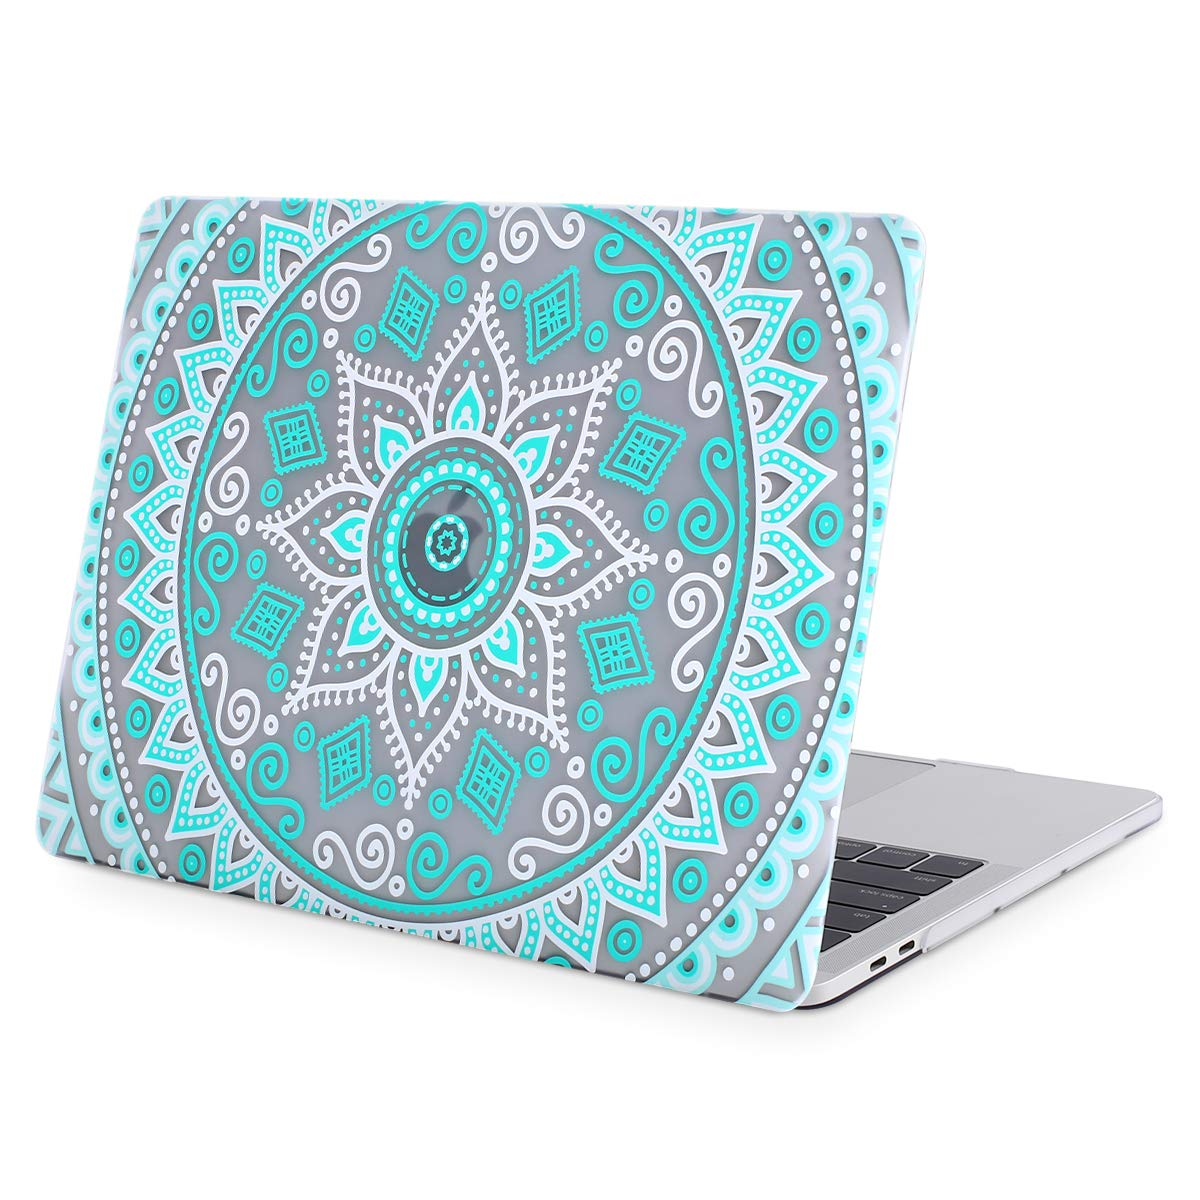 Rose Leaves Plastic Pattern Hard Case Shell Cover Compatible Newly Mac Pro 13 Inch with//Without Touch Bar MOSISO MacBook Pro 13 Case 2019 2018 2017 2016 Release A2159 A1989 A1706 A1708